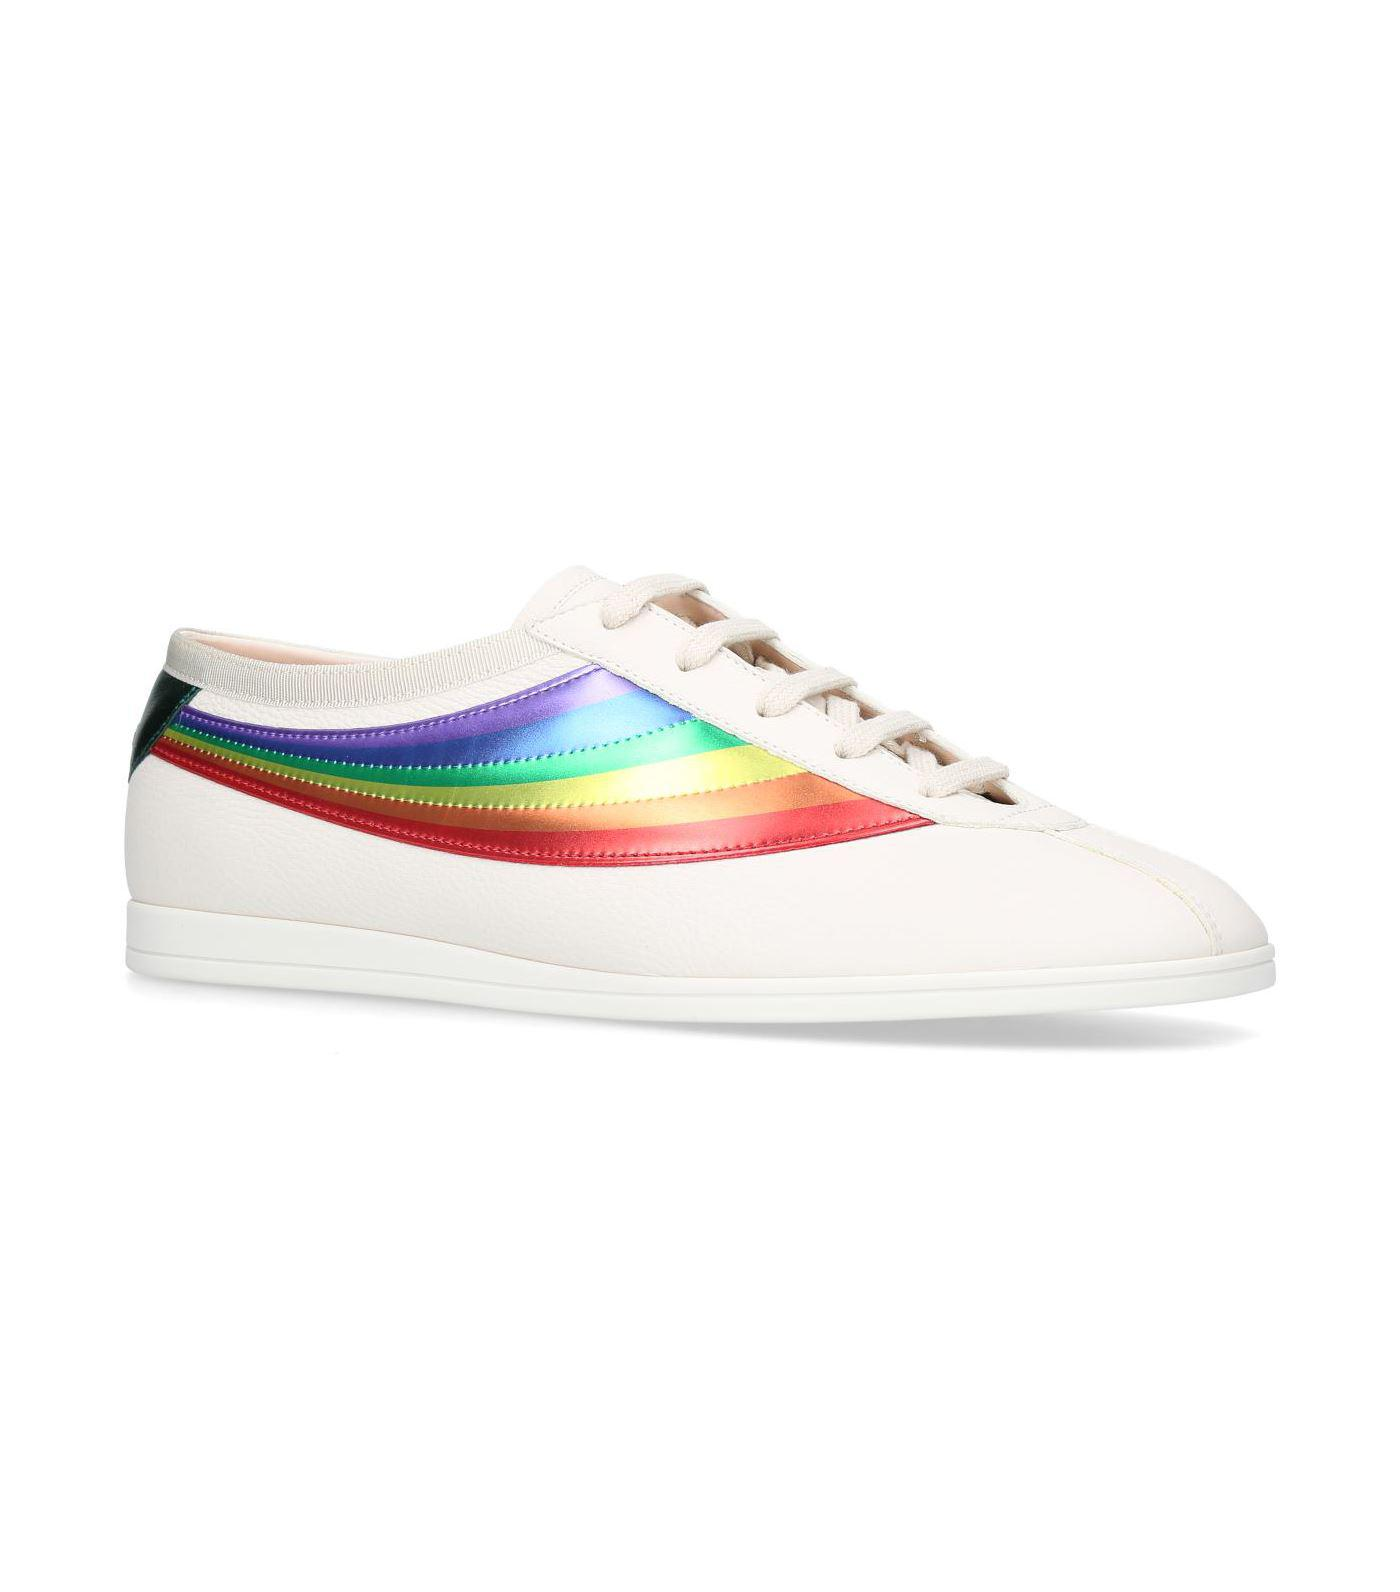 fe1901490 Gucci Rainbow Leather Competition Sneakers in White for Men - Lyst